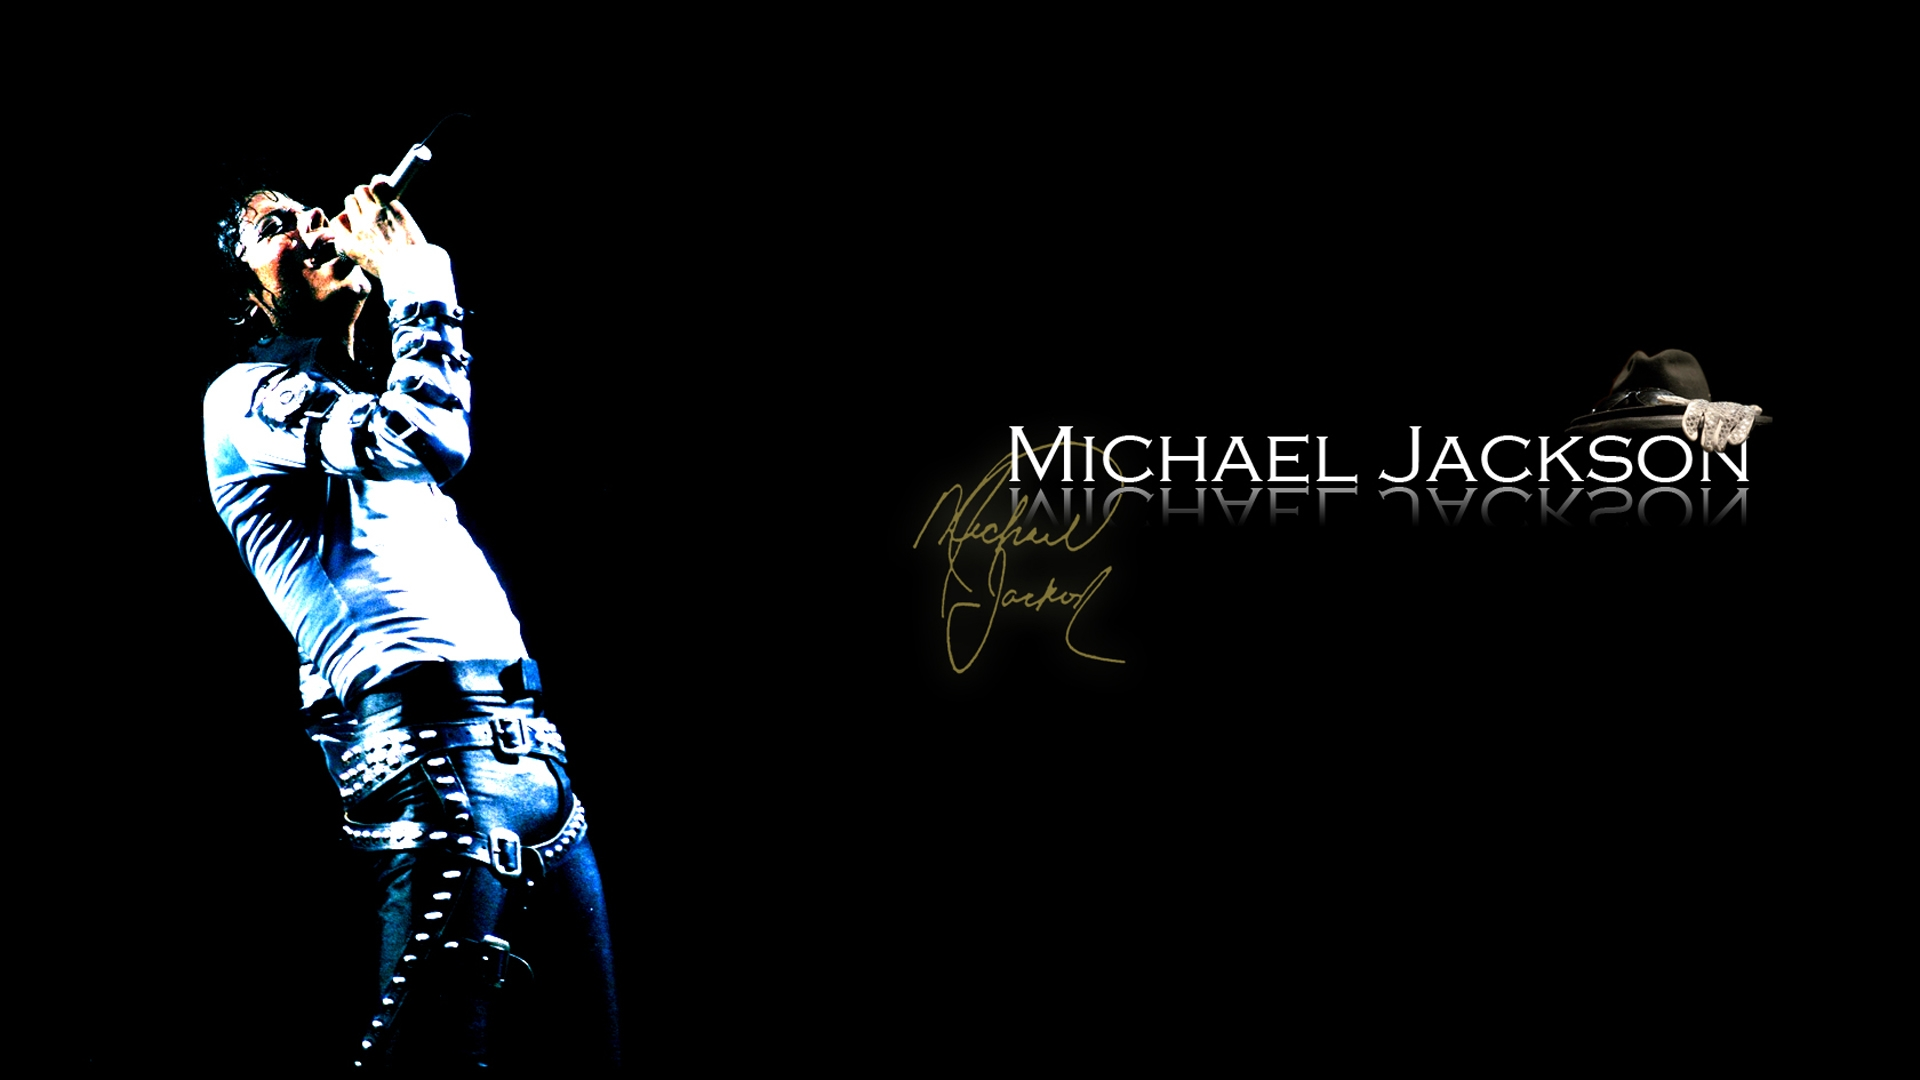 michael jackson the legend wallpapers crackmodo